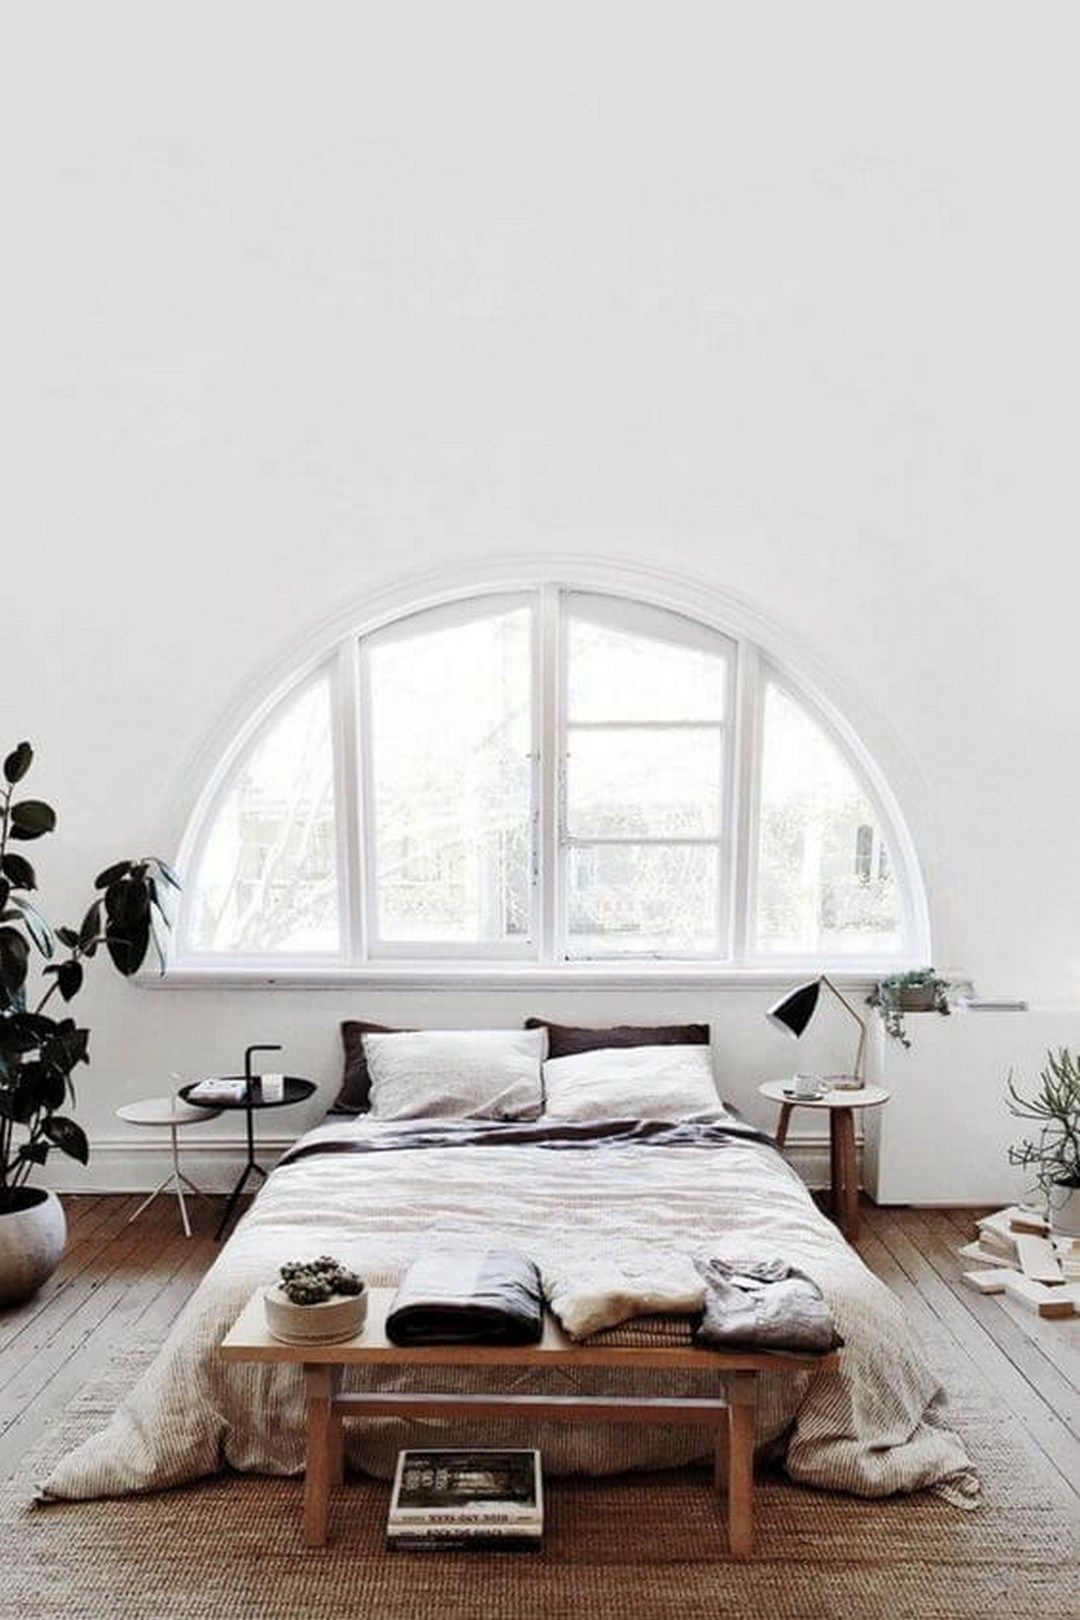 new home bedroom designs 2%0A    Modern and Stylish Rustic Scandinavian Bedroom Decor